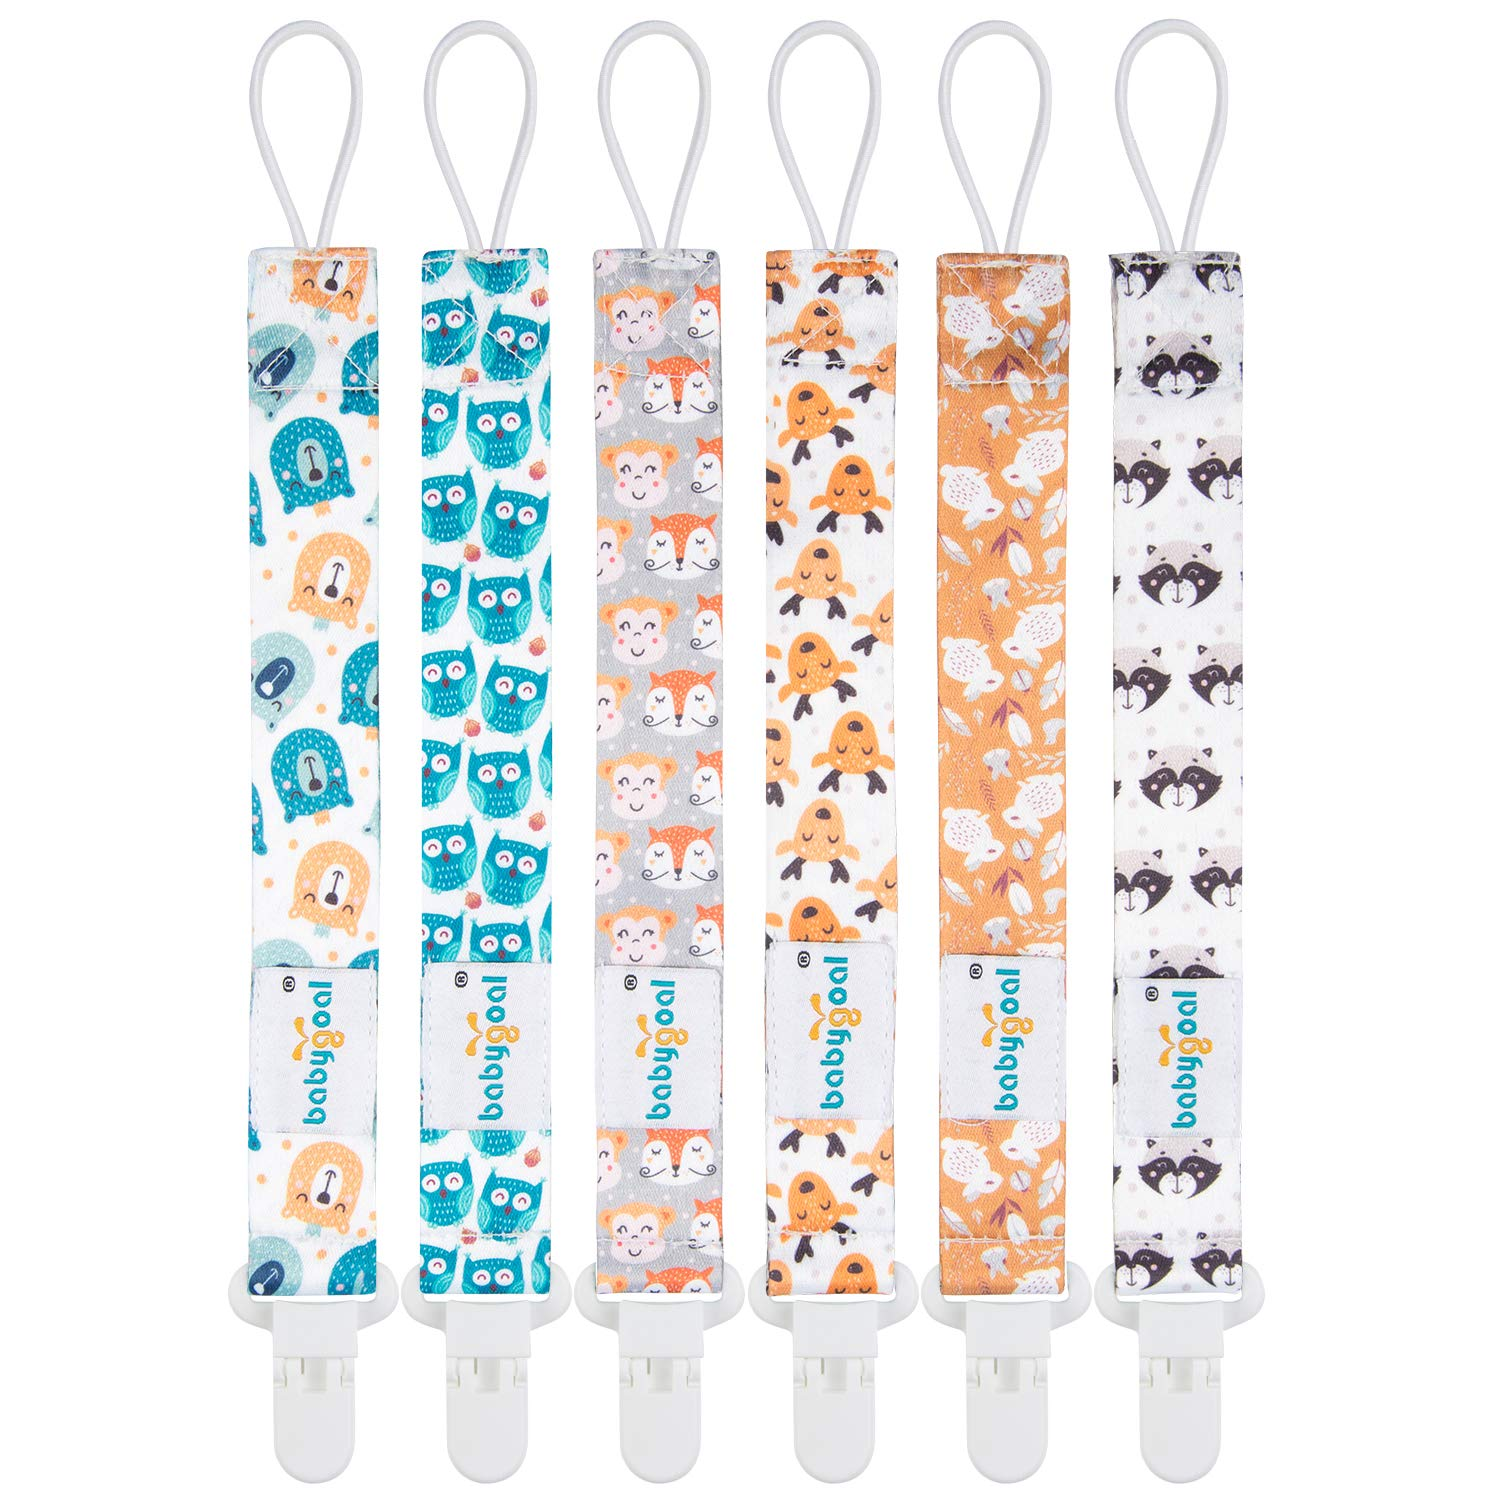 Babygoal Pacifier Clips, 6 Pack Pacifier Holder for Boys and Girls Fits Most Pacifier Styles &Teething Toys and Baby Shower Gift 6PB01